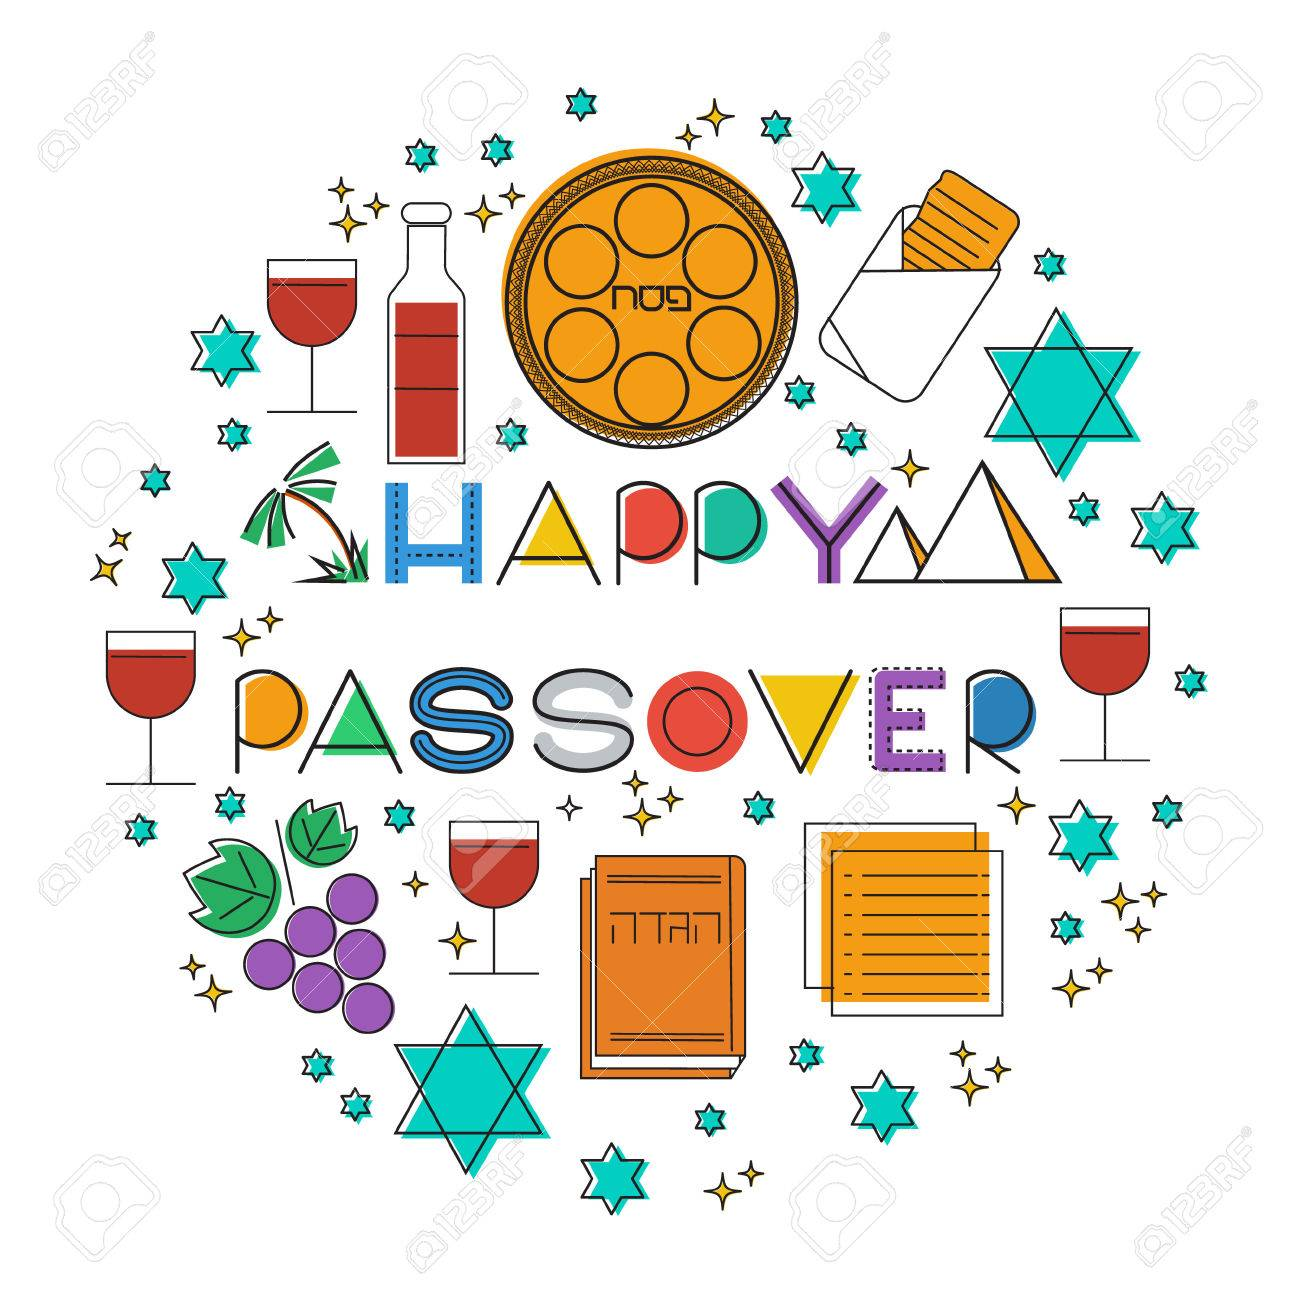 Happy passover jewish holiday greeting card elements set happy passover jewish holiday greeting card elements set vectot linear illustration m4hsunfo Image collections